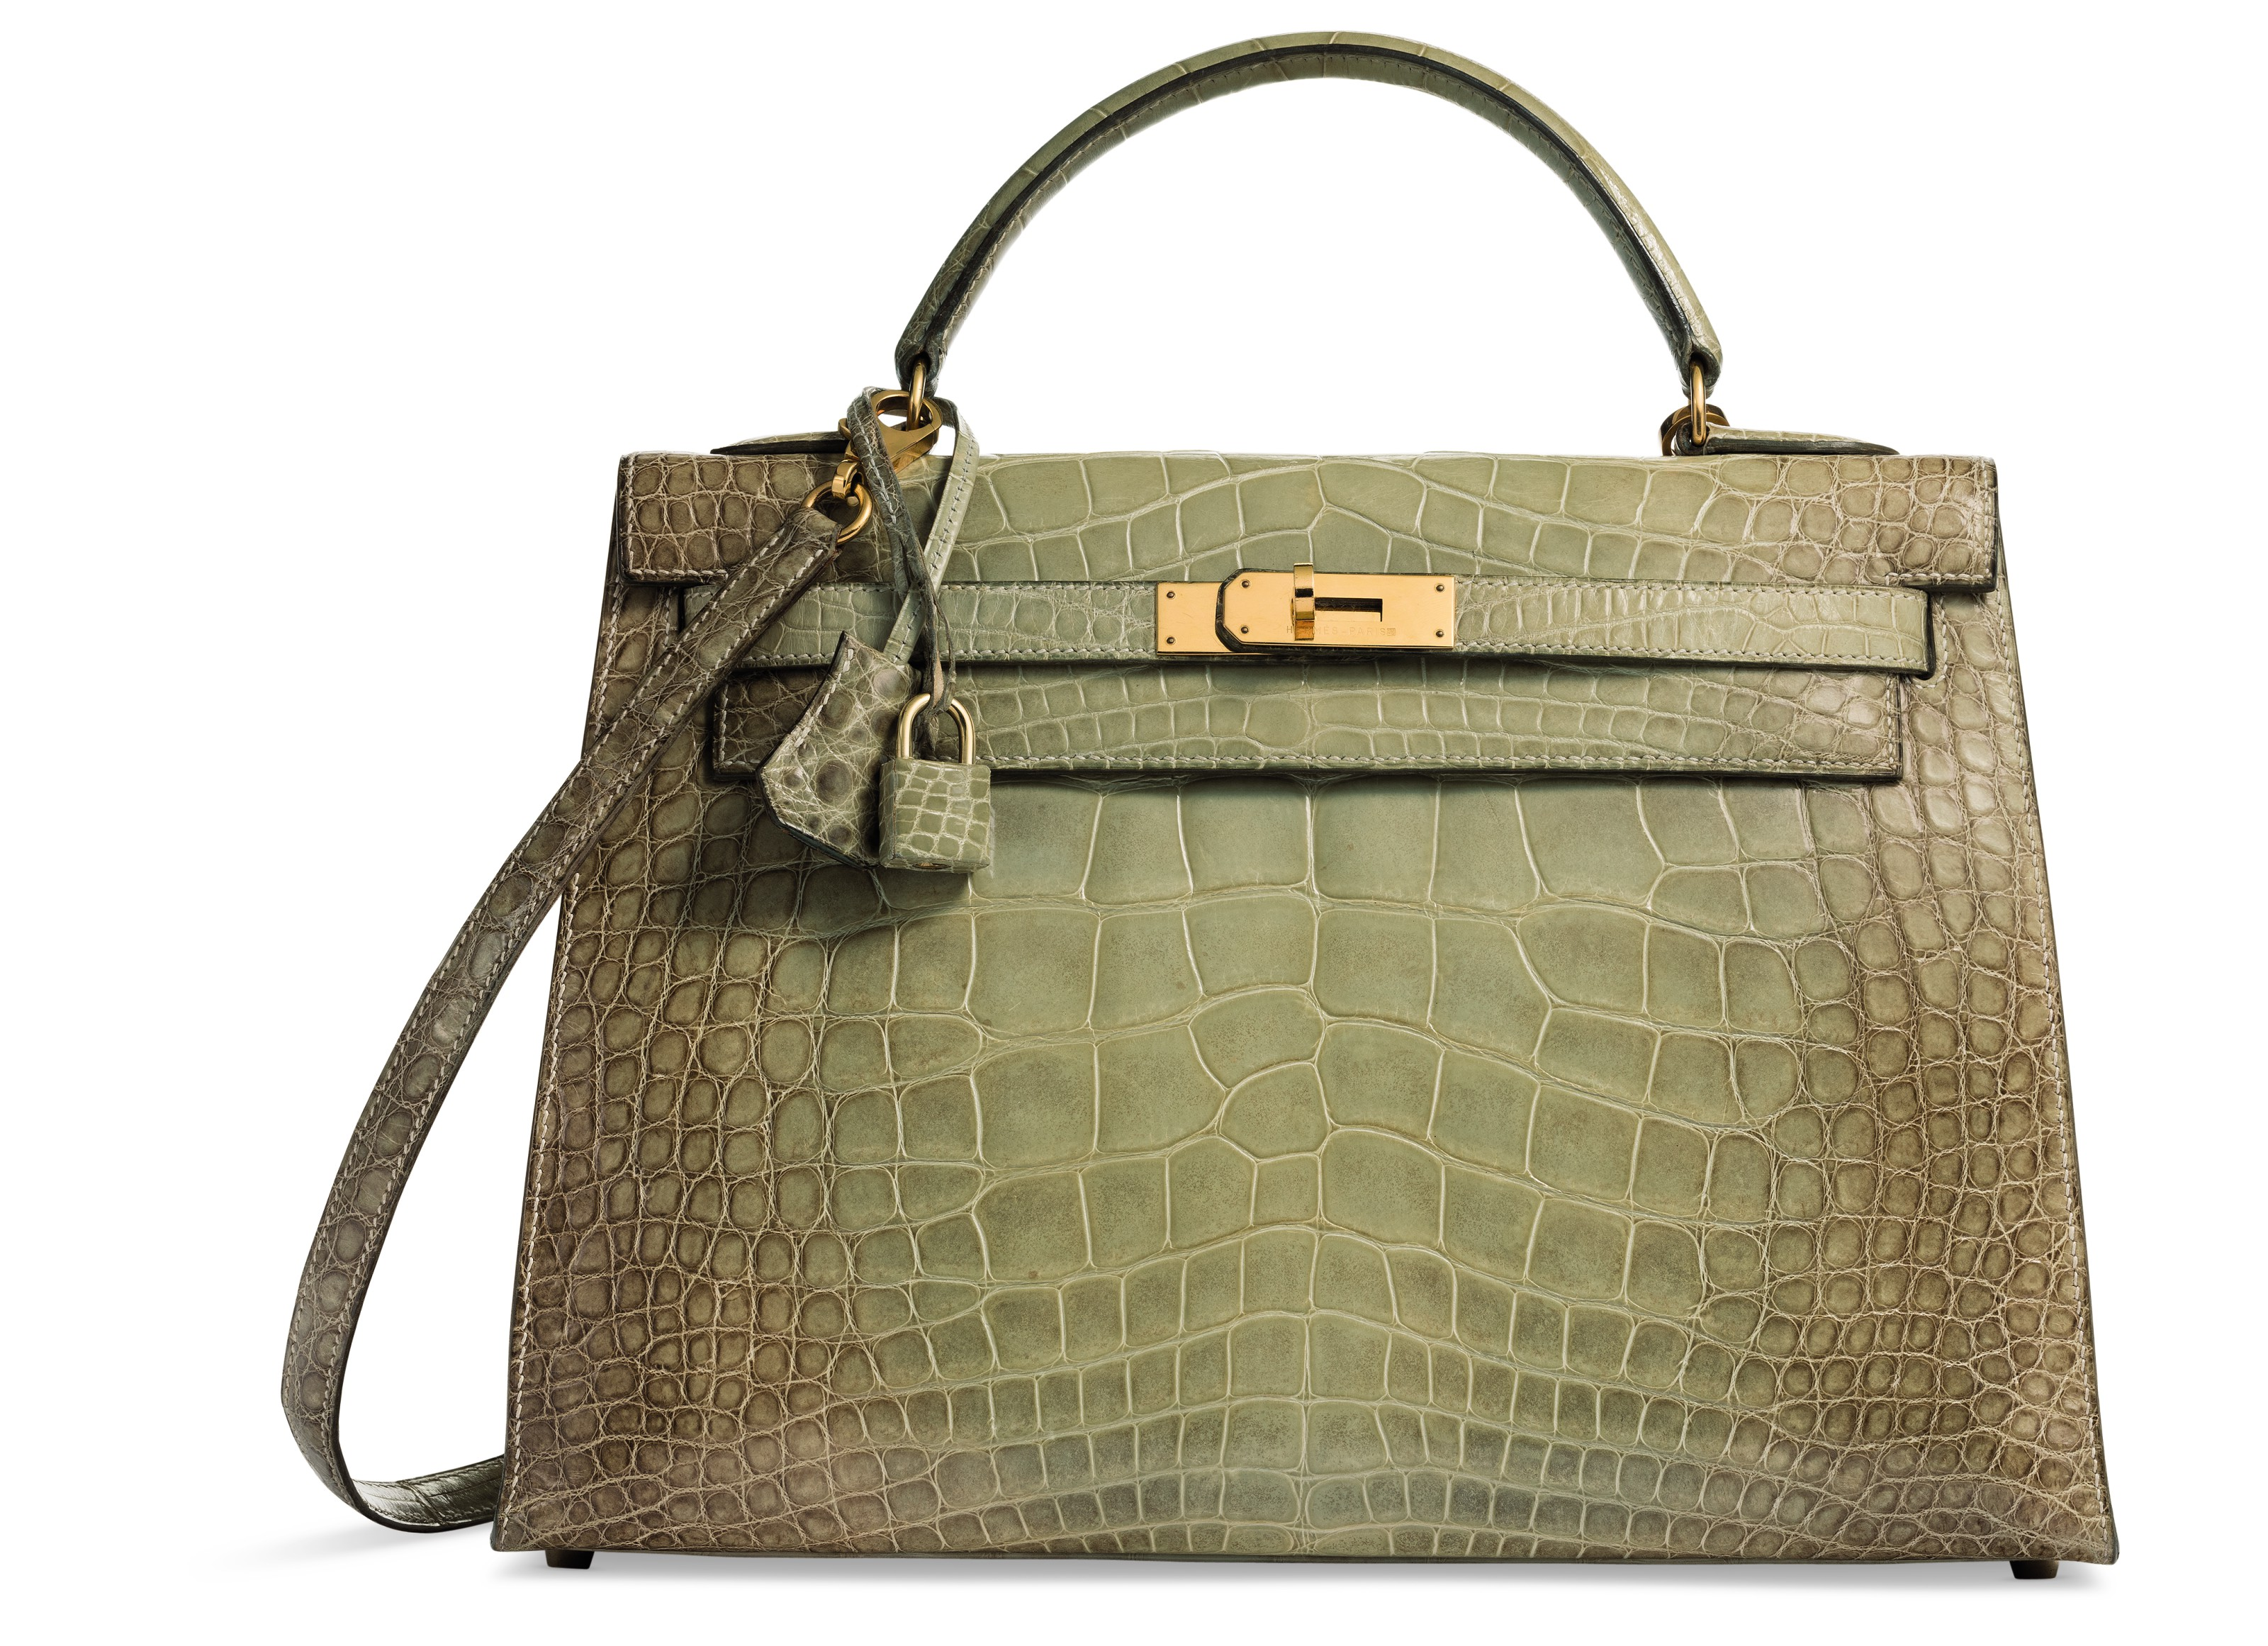 dbb49be5ff38 ... wholesale a rare shiny natura vert céladon alligator sellier kelly 32  with gold hardware hermès 10b8b low cost hermes ...